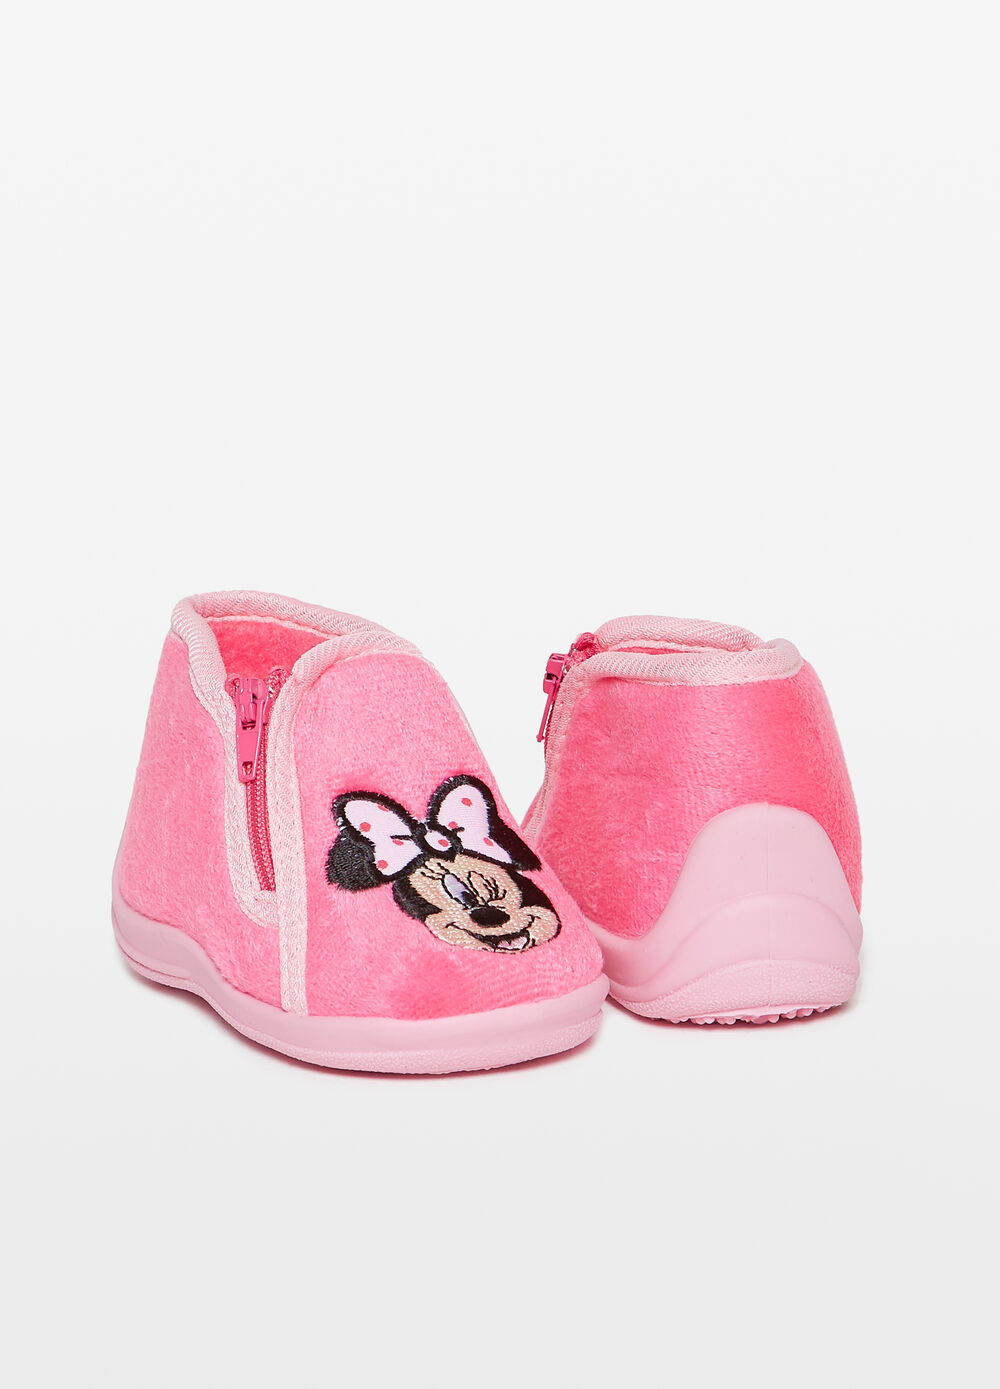 Pantofole con zip e patch Minnie